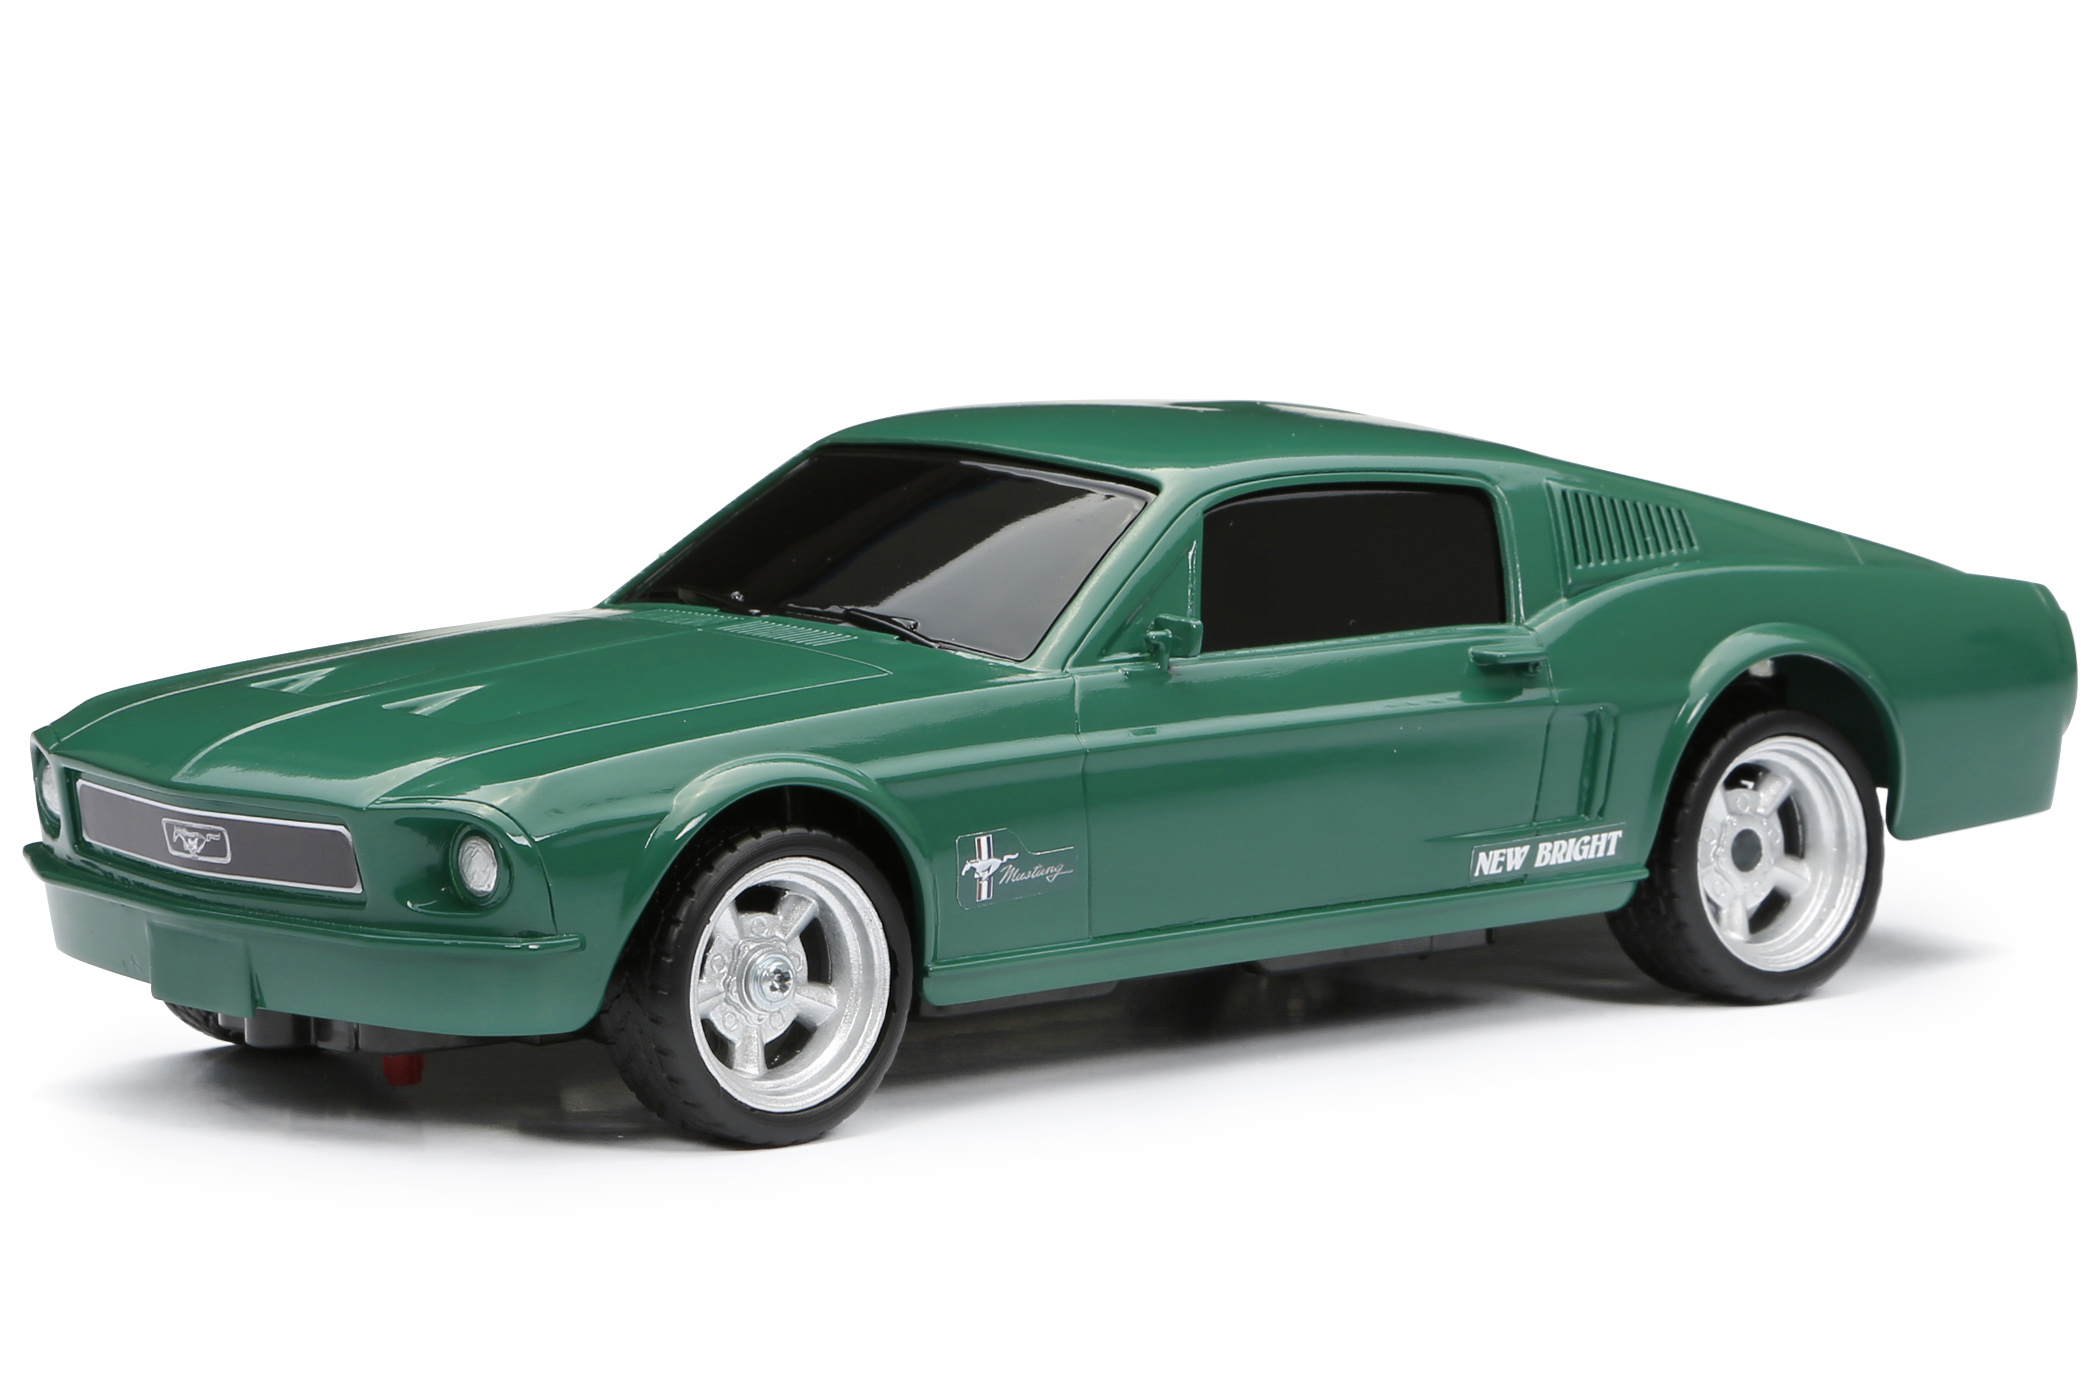 New Bright 1 16 Rc Chargers 68 Mustang Walmart